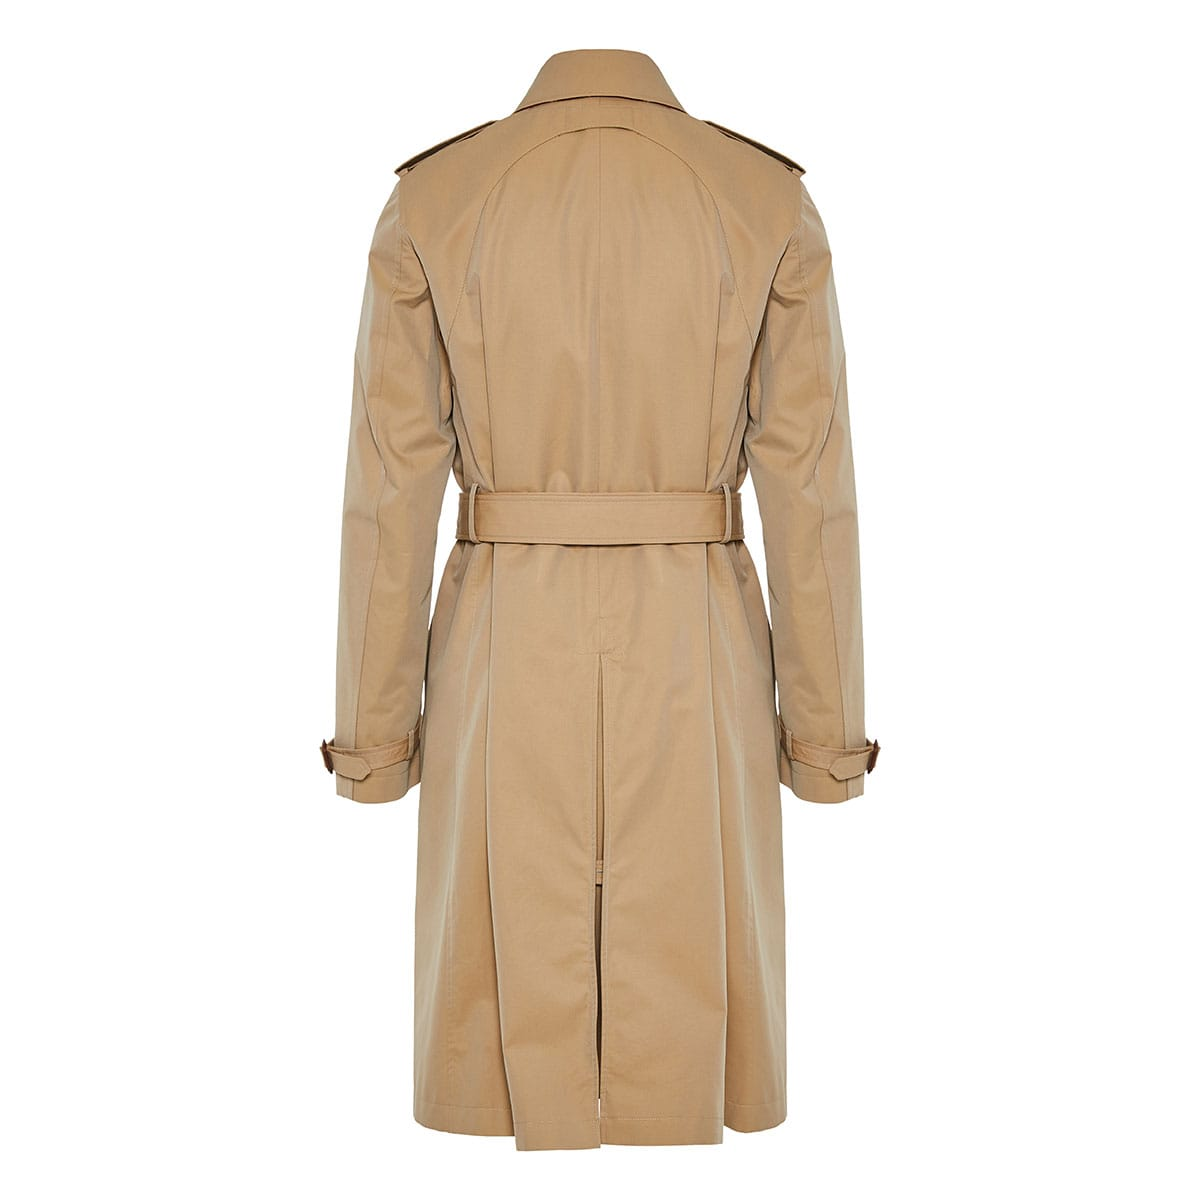 Trench coat with harness detail